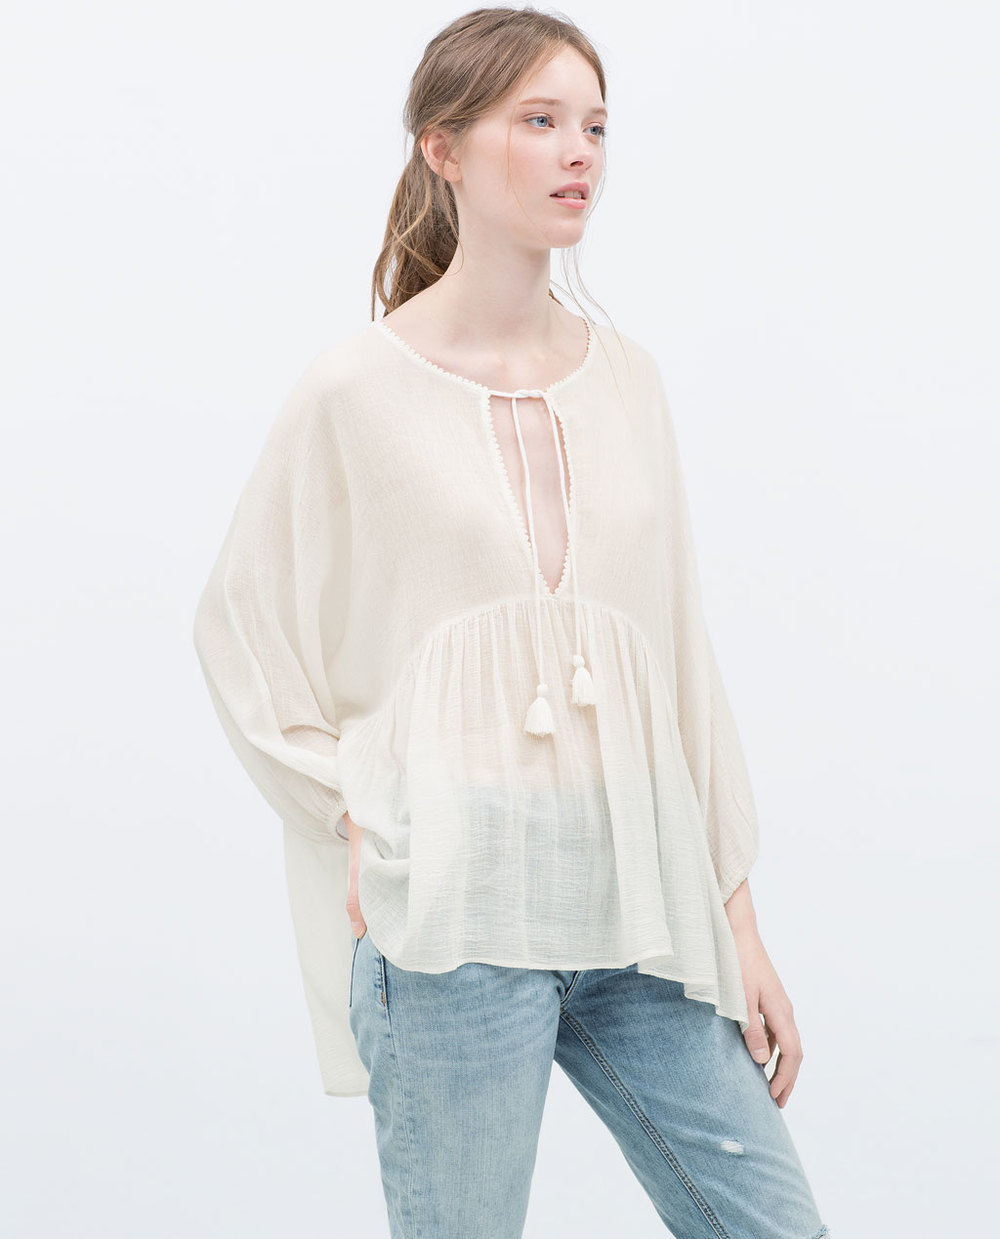 TUNIC TOP 29.99 USD